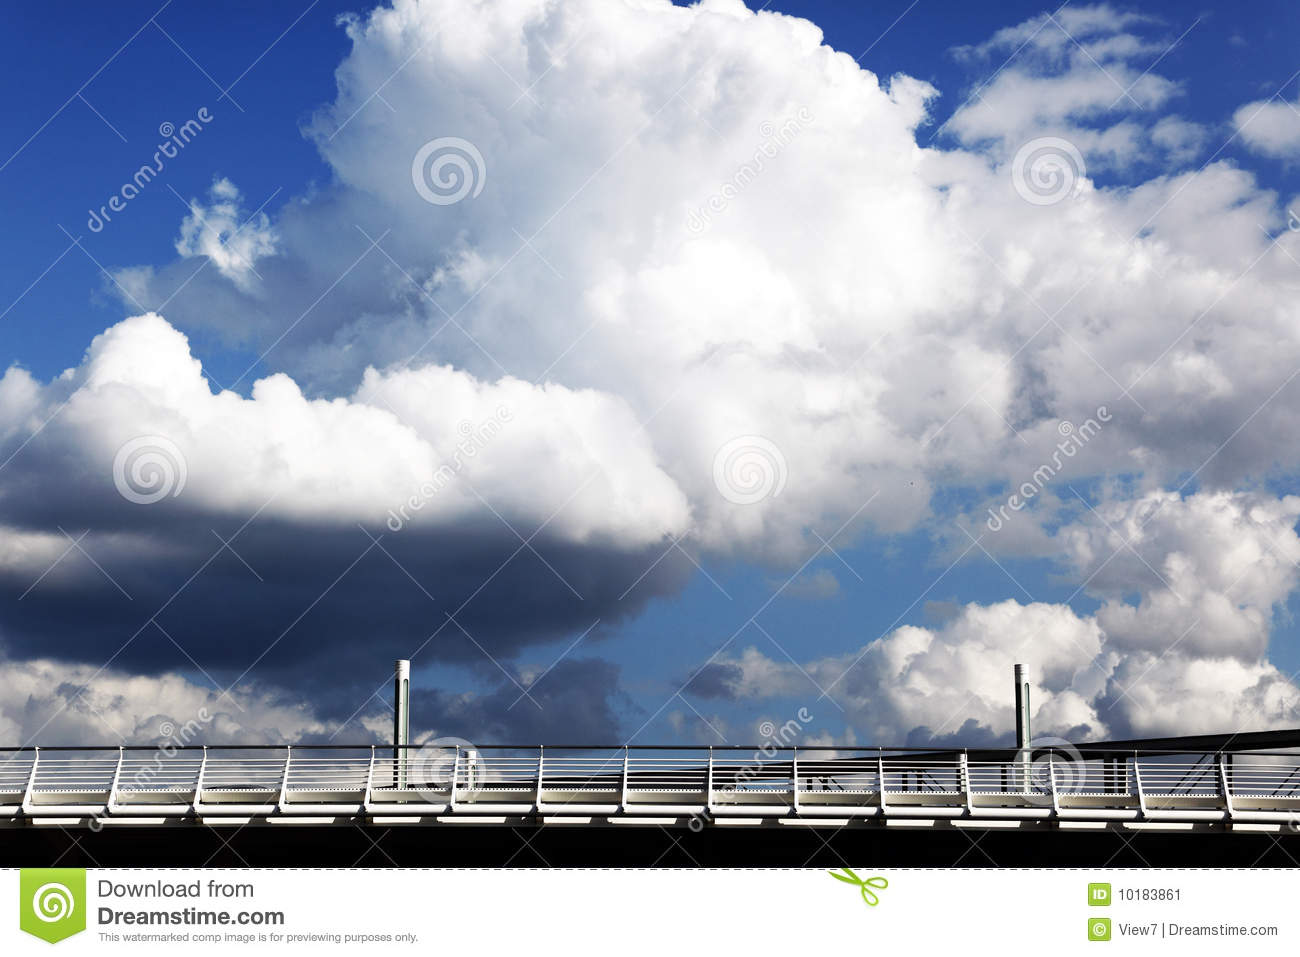 Clouds in sky with bridge